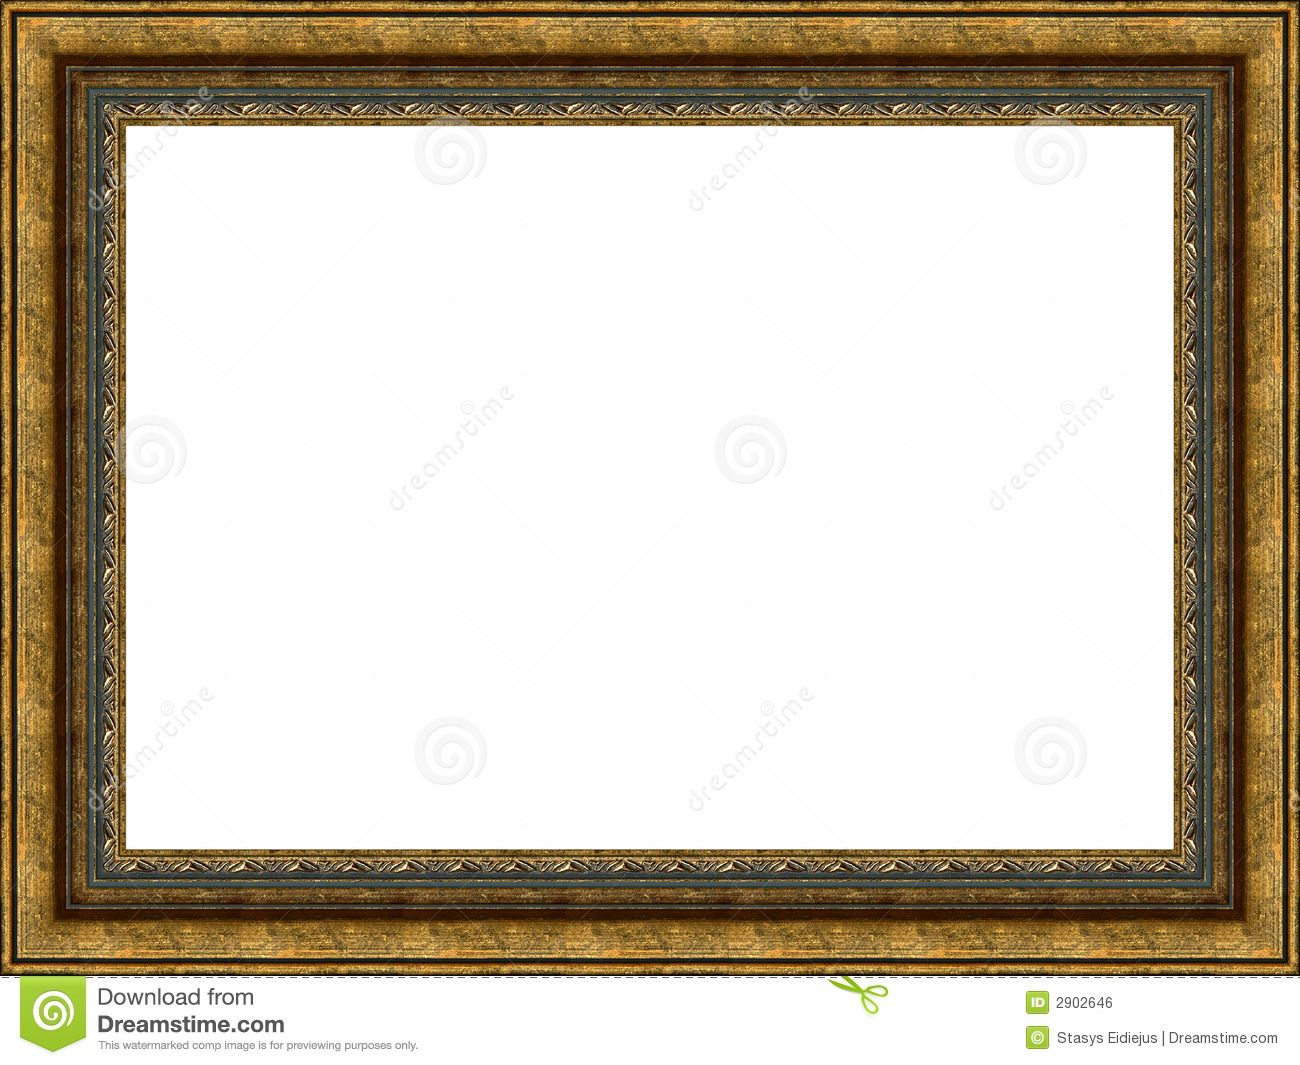 old-wooden-frame-2902646.jpg (1300×1065) | old book frame | Pinterest for Wooden Picture Frame Clipart  197uhy